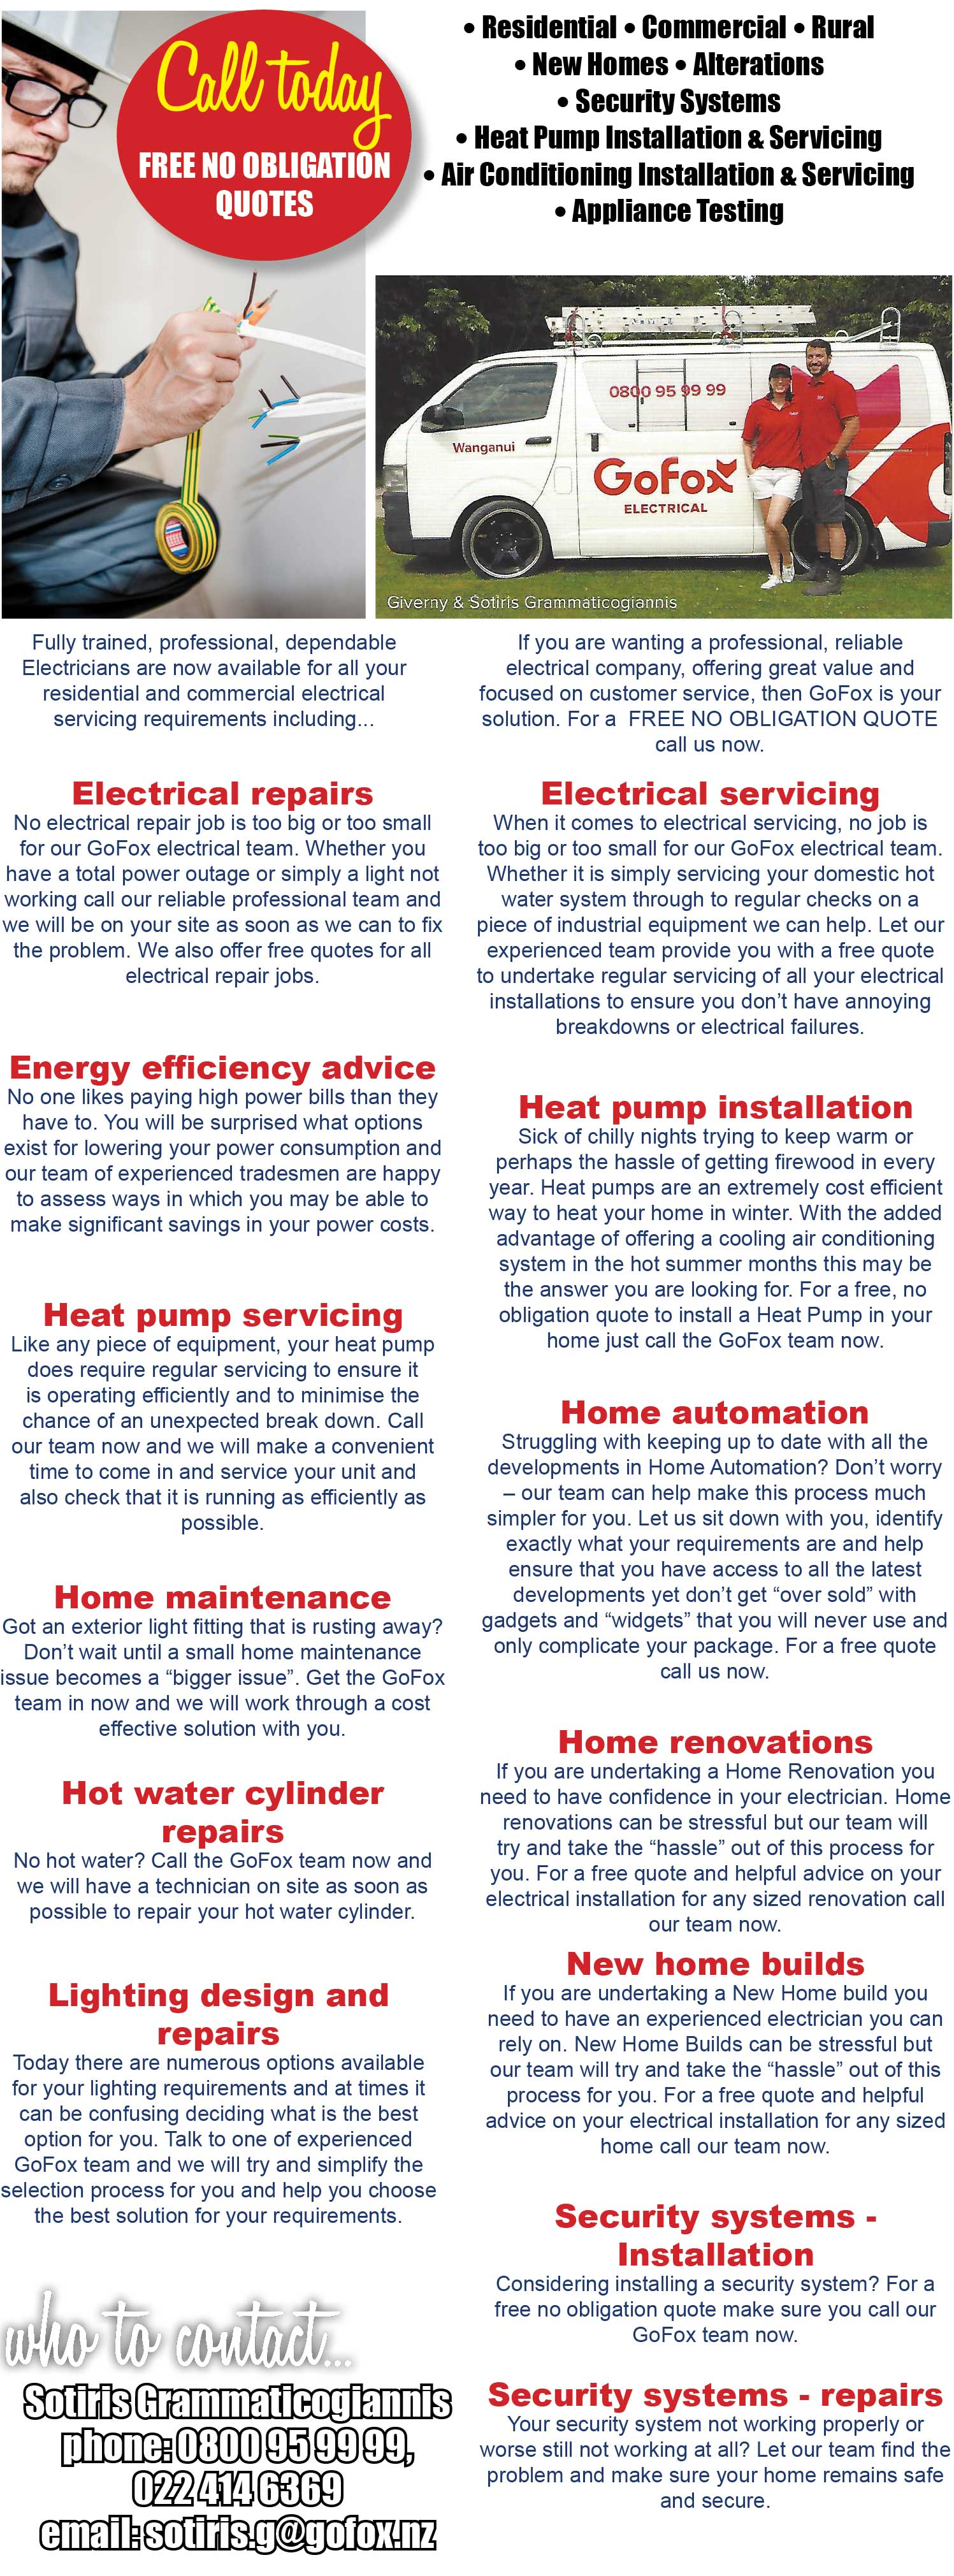 GoFox Electricians Wanganui, Residential, commercial, rural, new homes, alterations, security systems, heat pump installations & servicing, air conditioning installation & servicing.